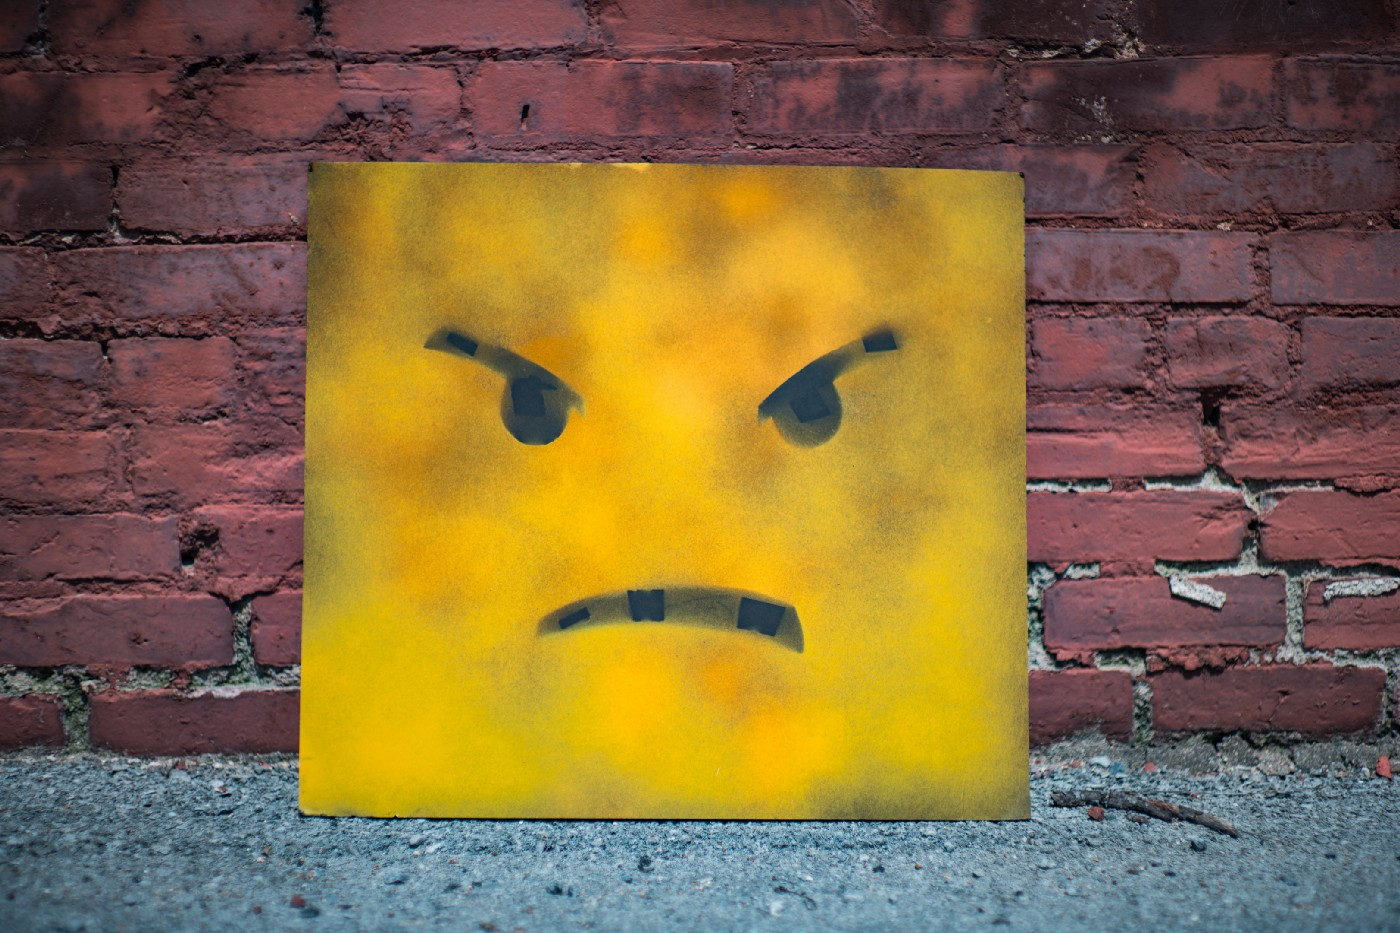 Yellow box with an angry face against a brick wall.